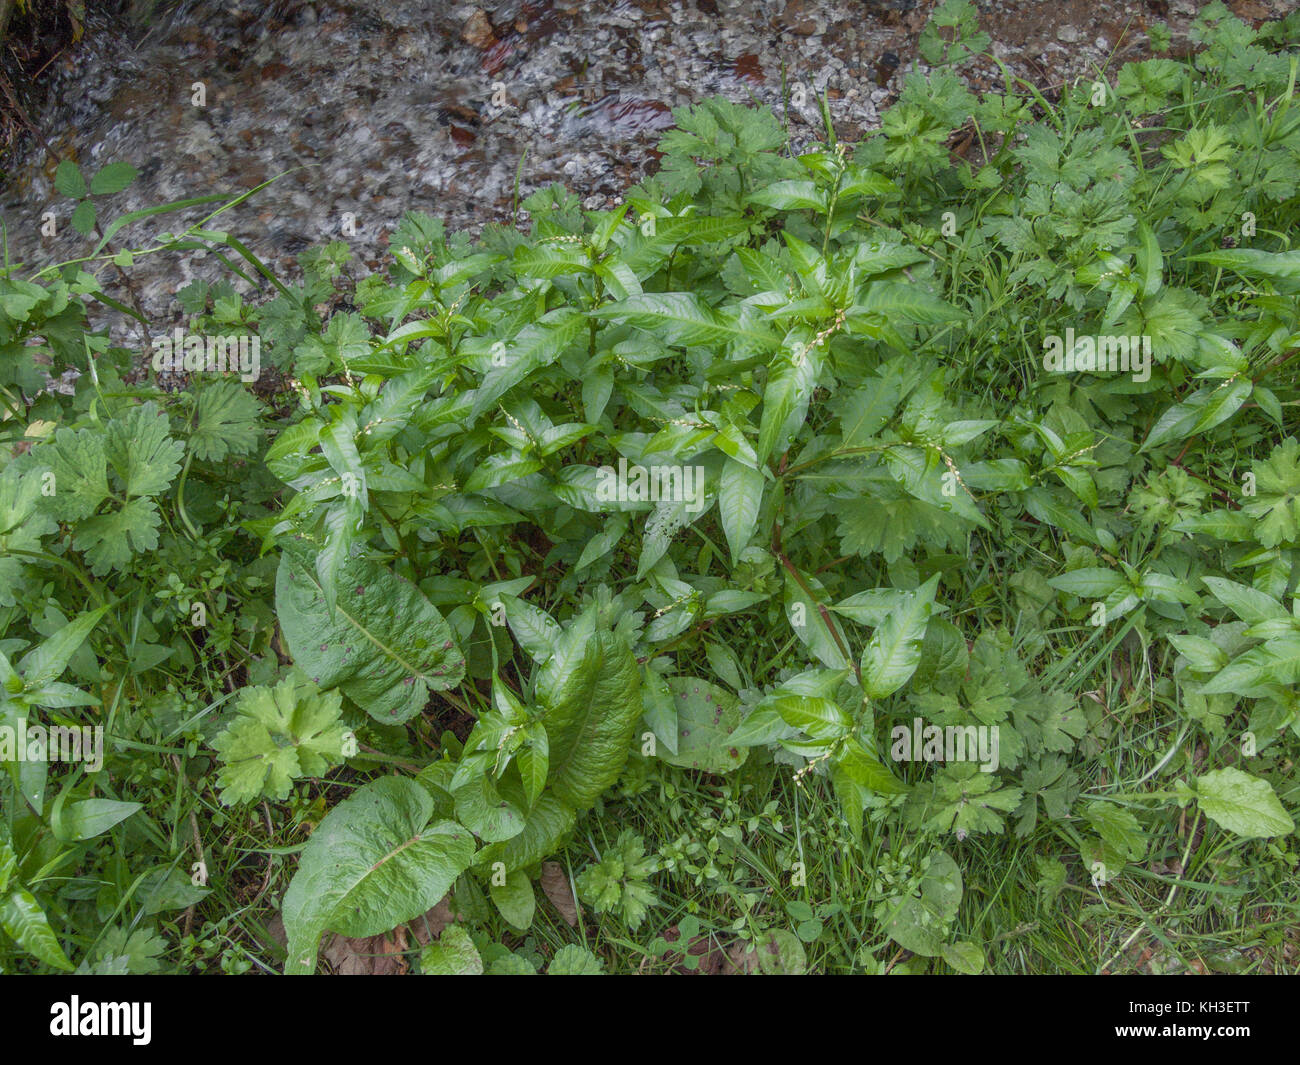 Specimen of Water Pepper (Polygonum hydropiper) prior to flowers opening. - Stock Image